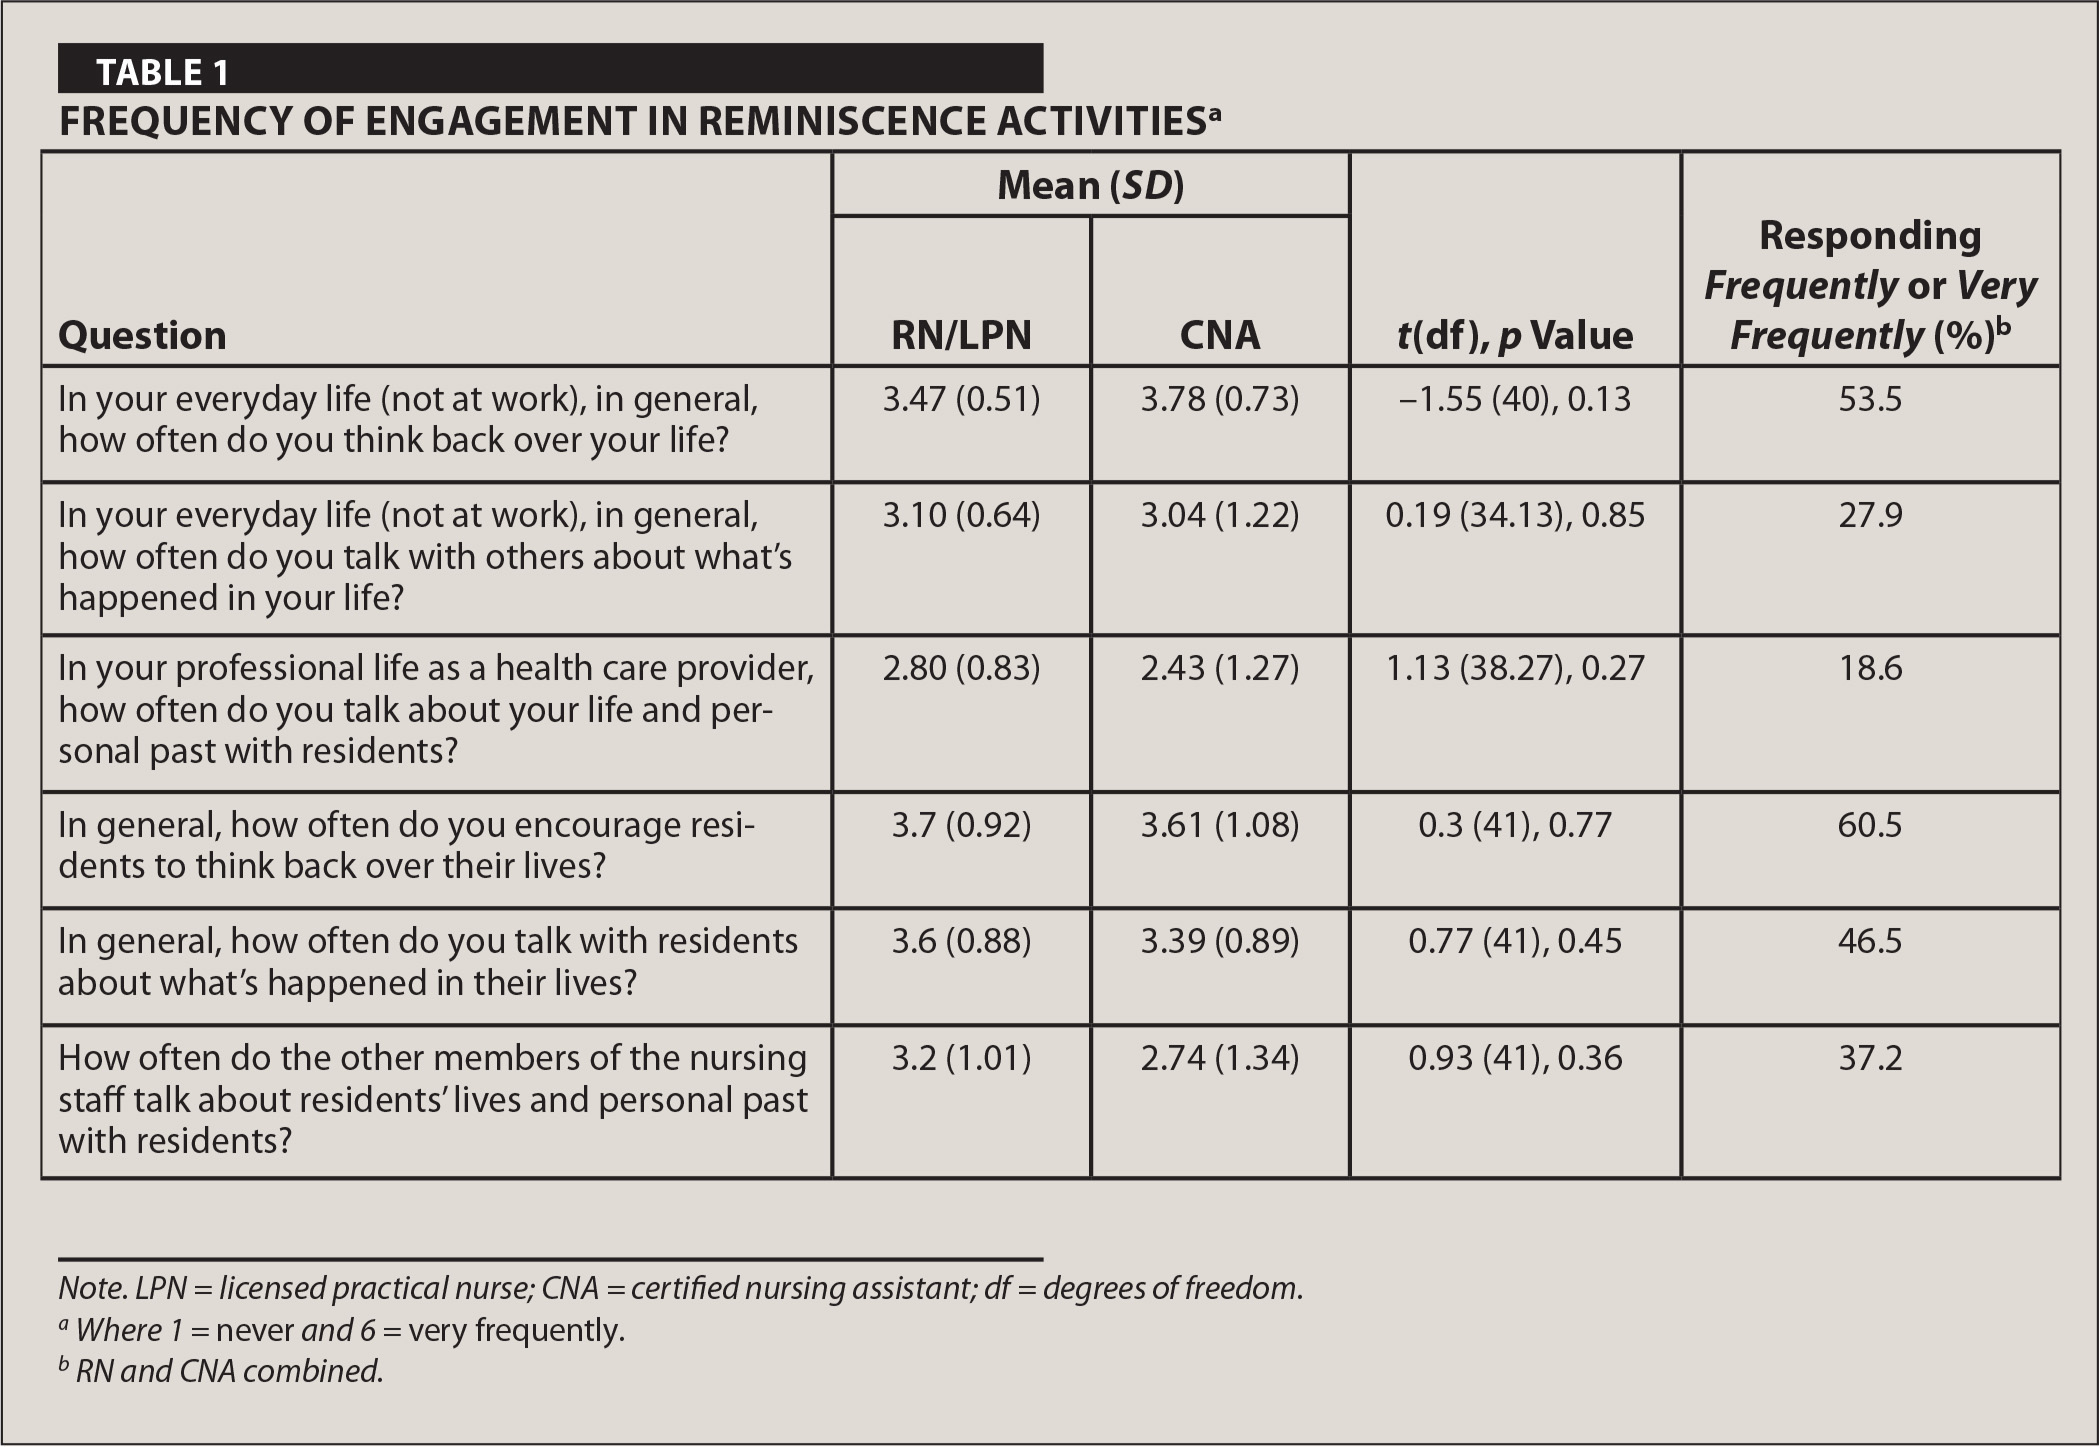 Frequency of Engagement in Reminiscence Activitiesa